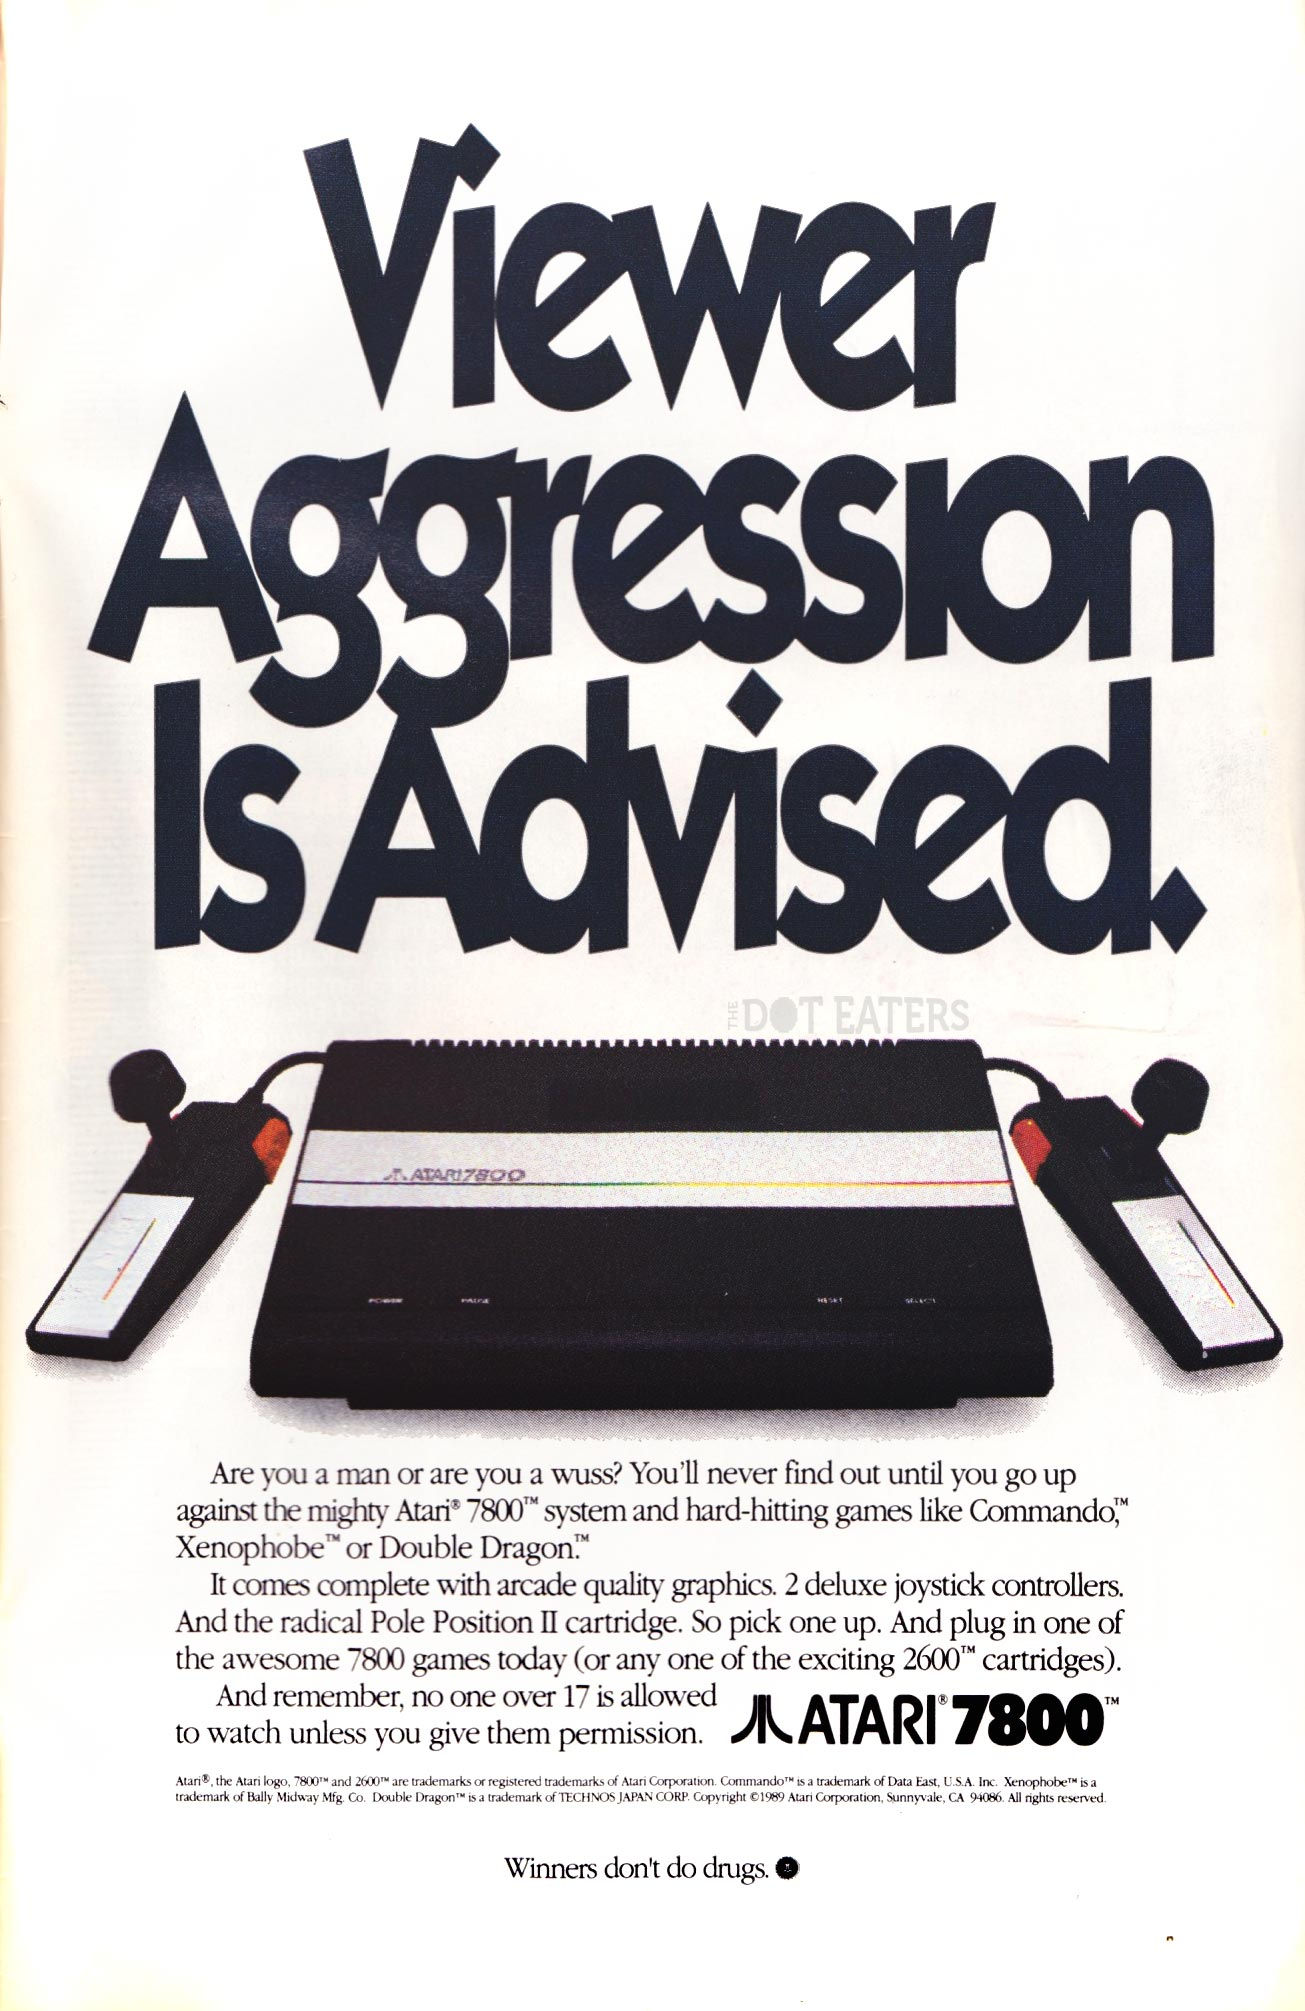 Ad for the 7800, a video game console by Atari